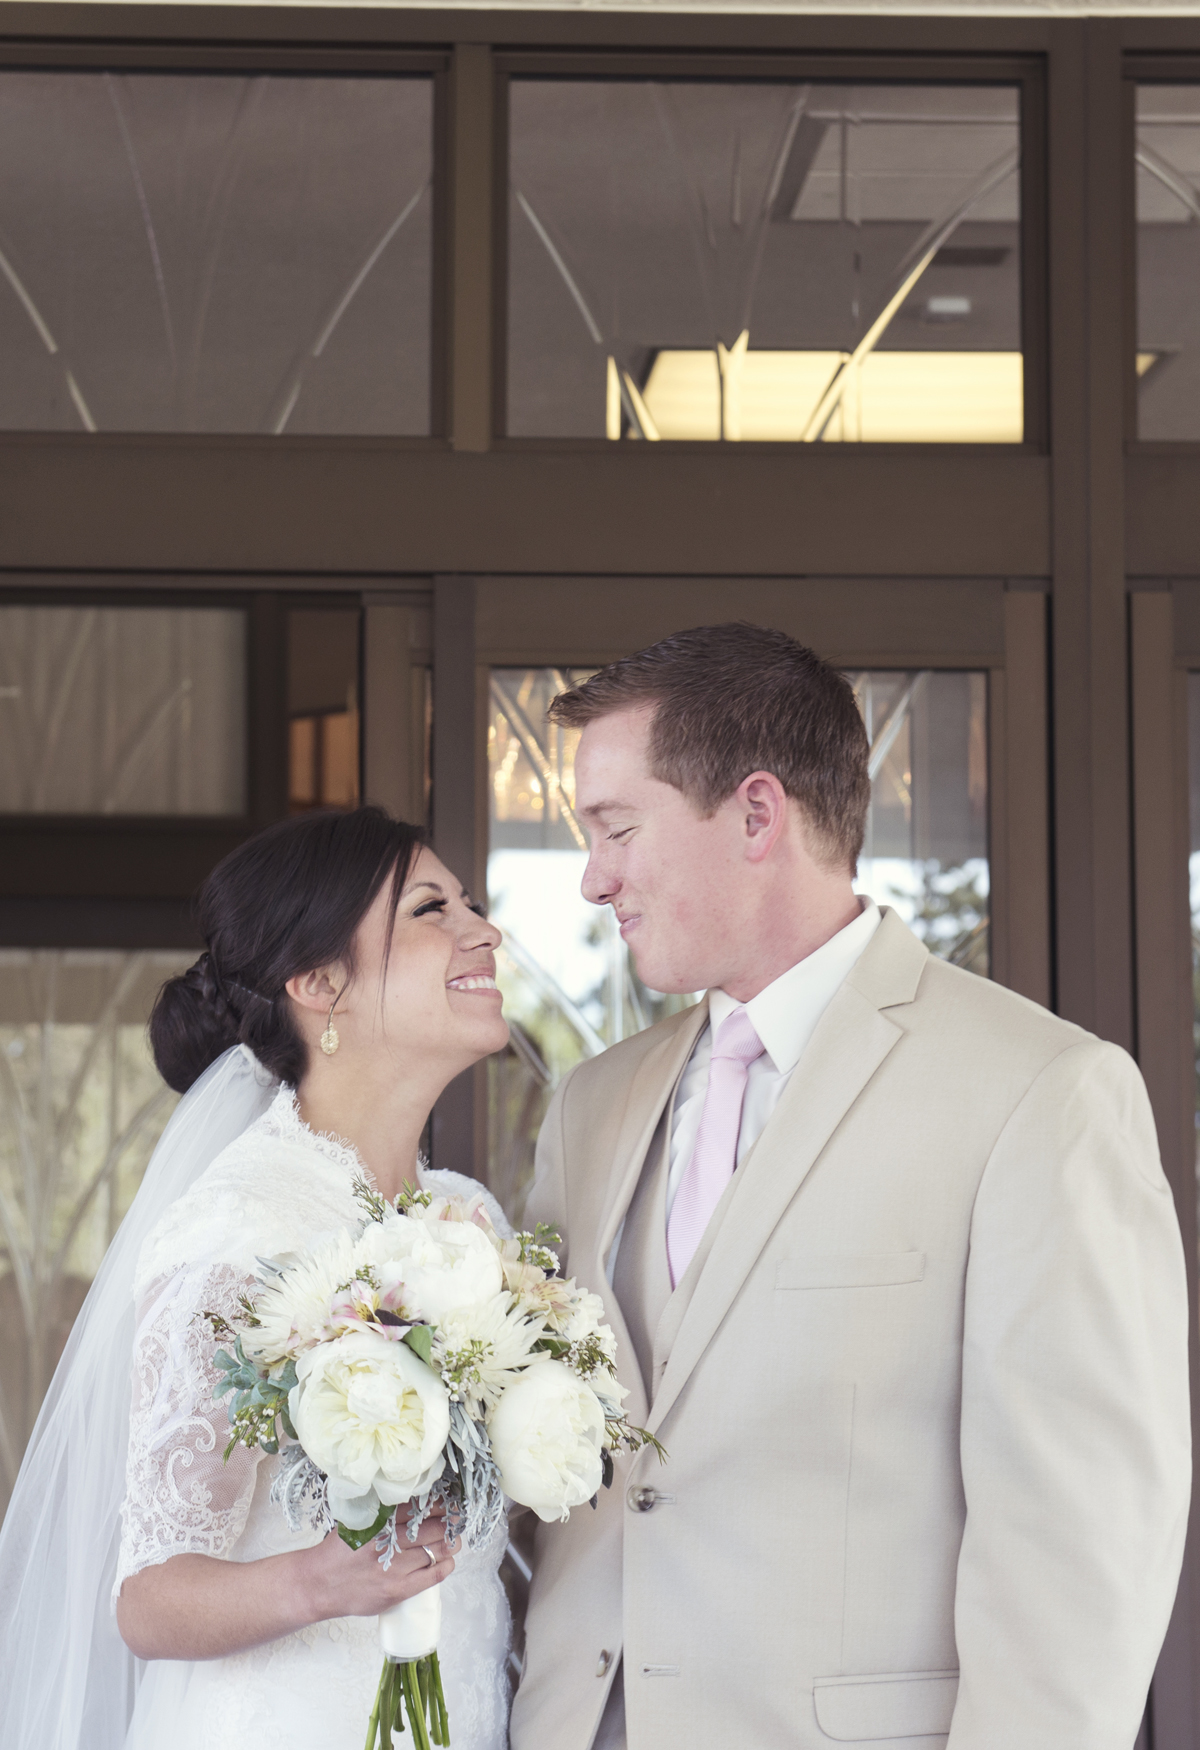 seattleweddingphotography_006.jpg